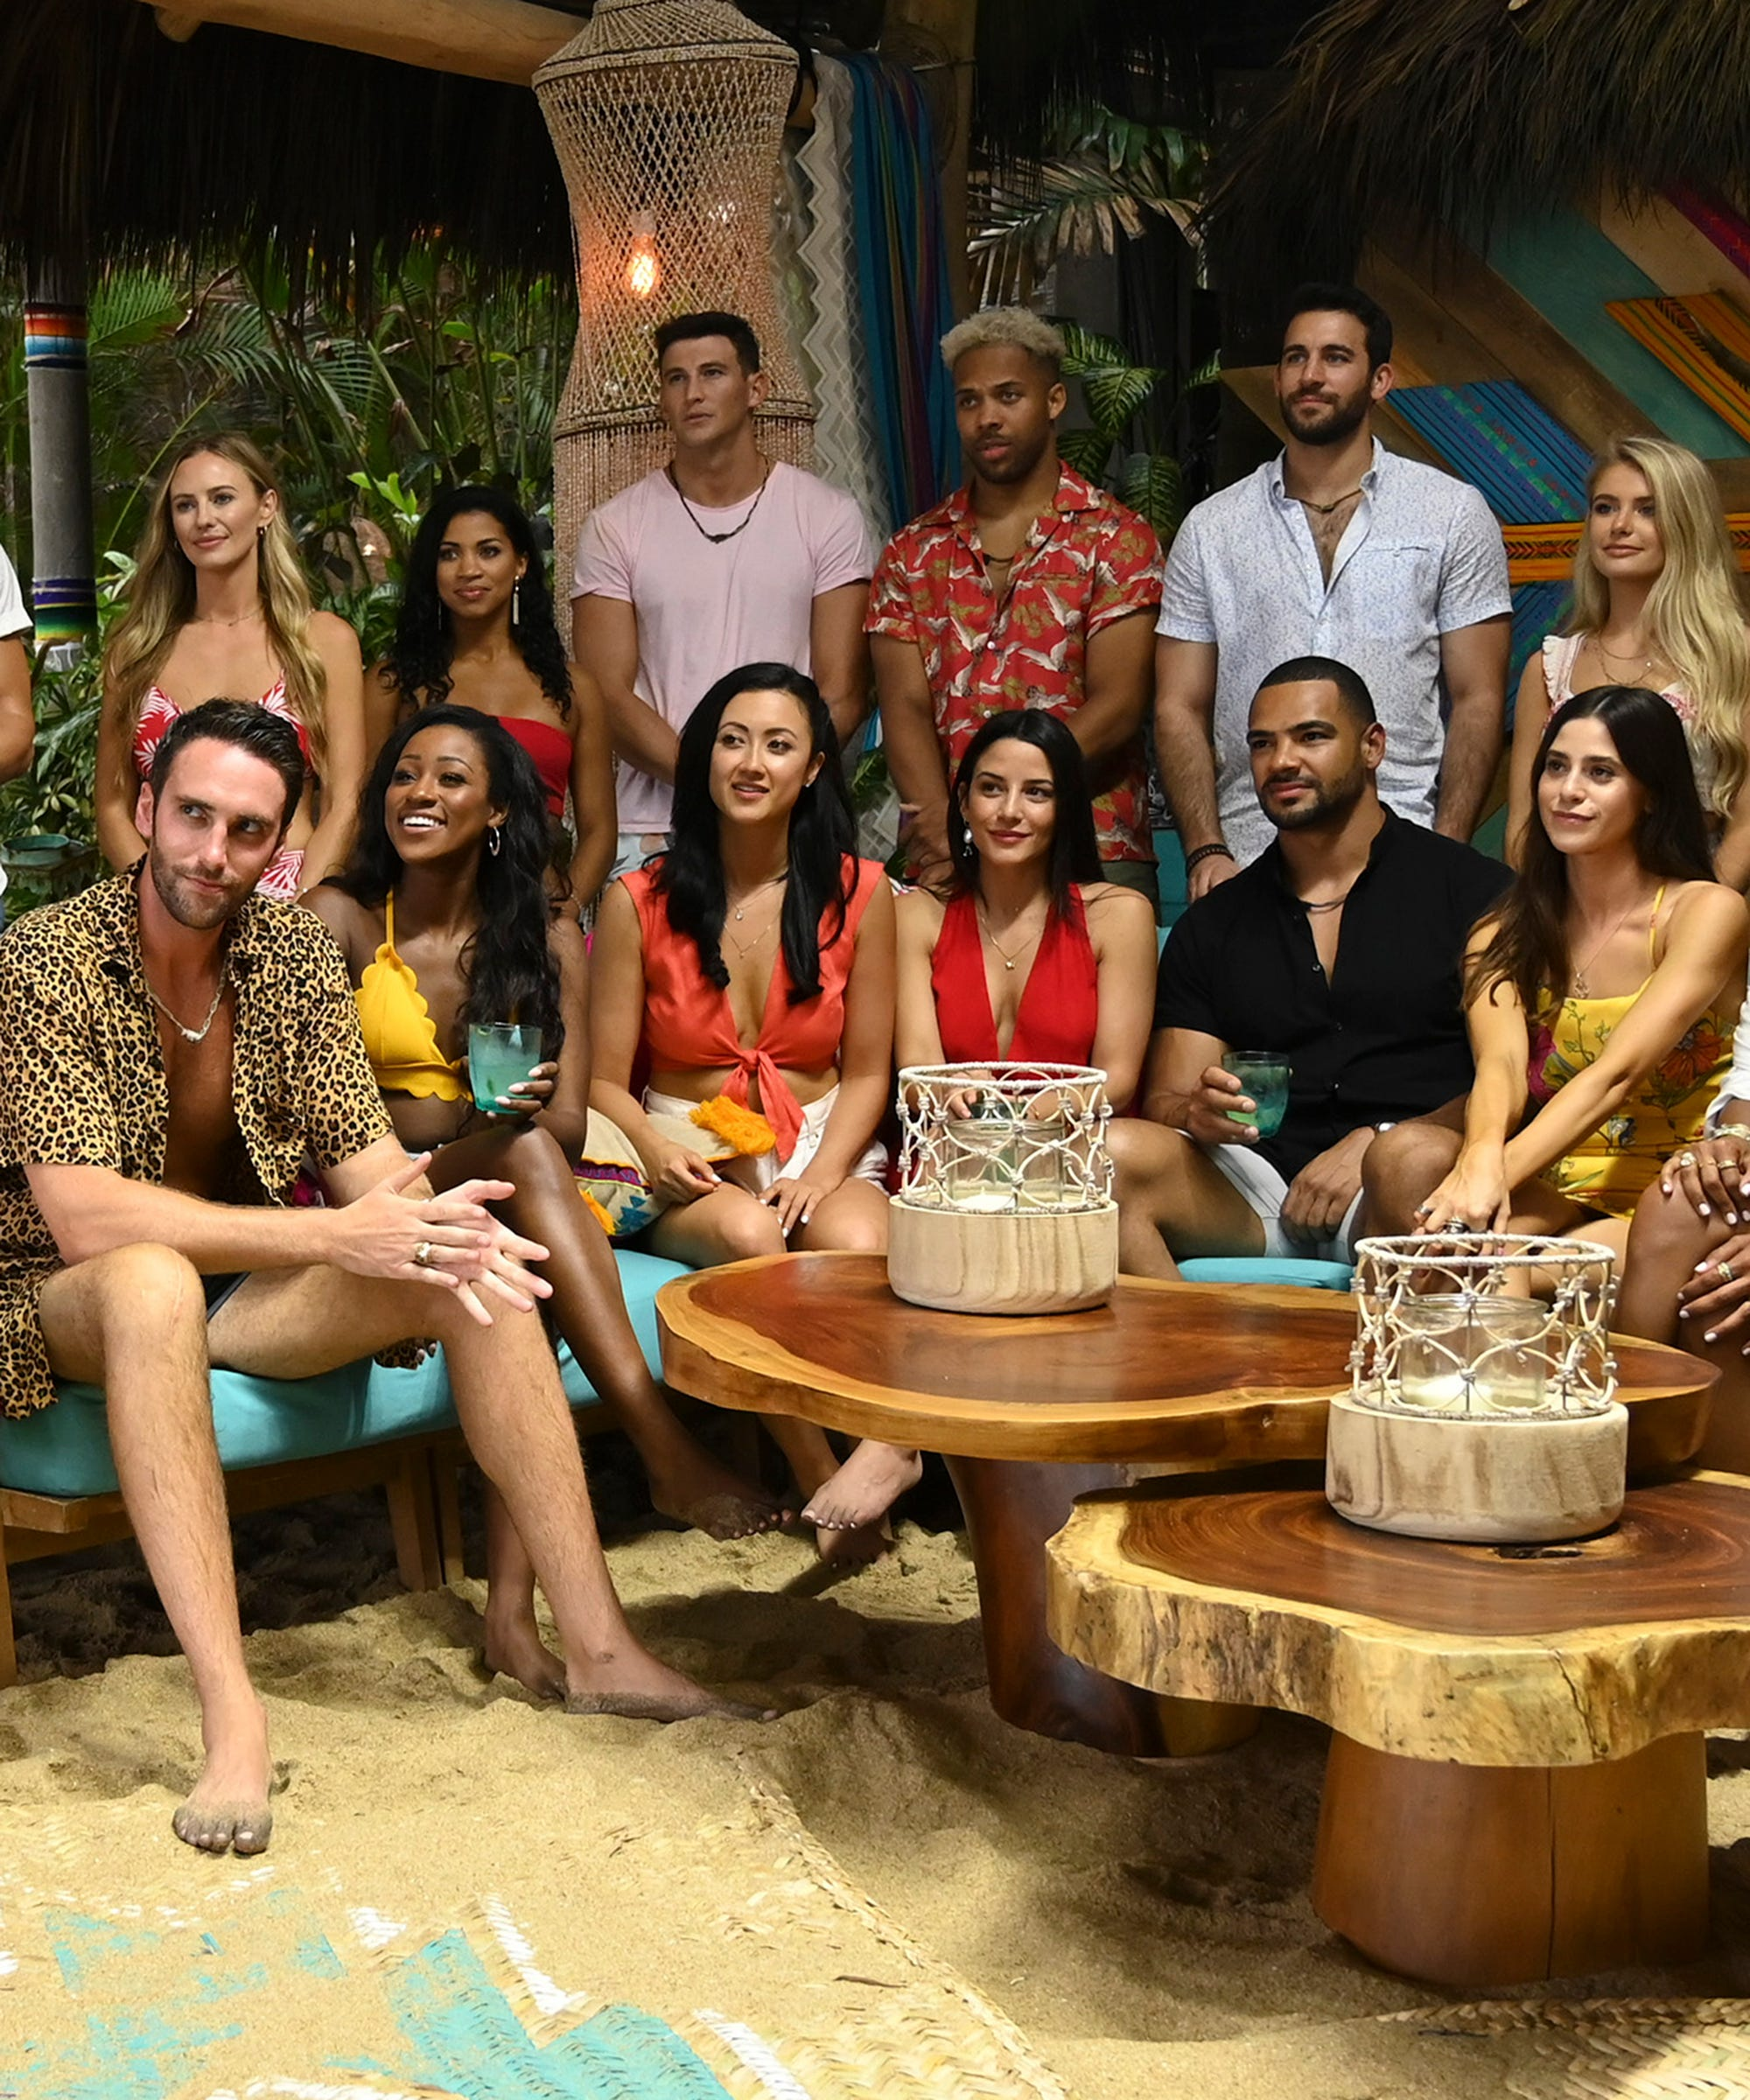 How Old Is The Cast Of Bachelor In Paradise 2019